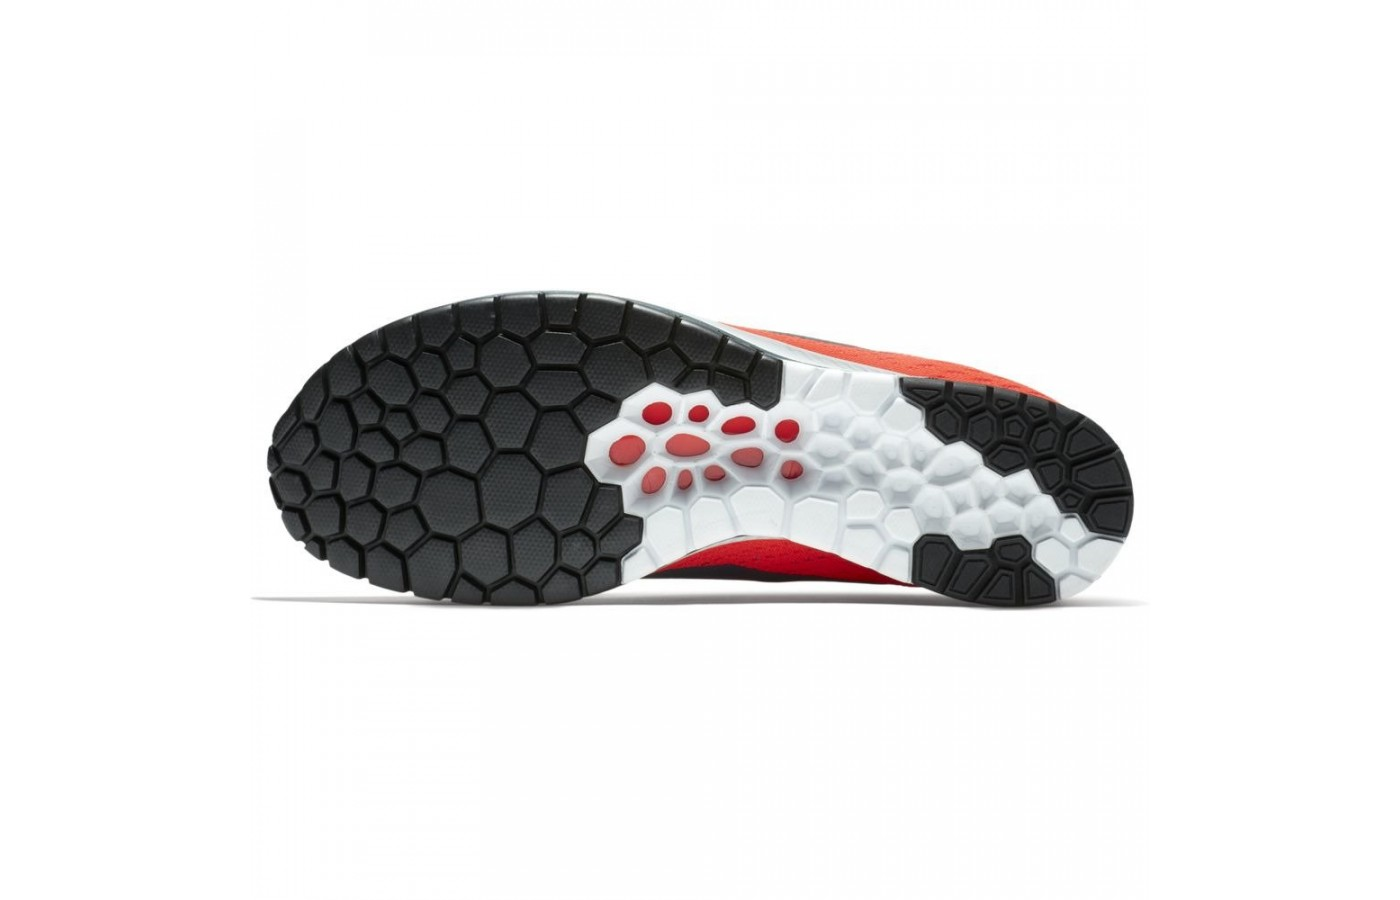 The Nike Zoom Streak 6 has an ultra sticky tread for better grip on all surfaces.